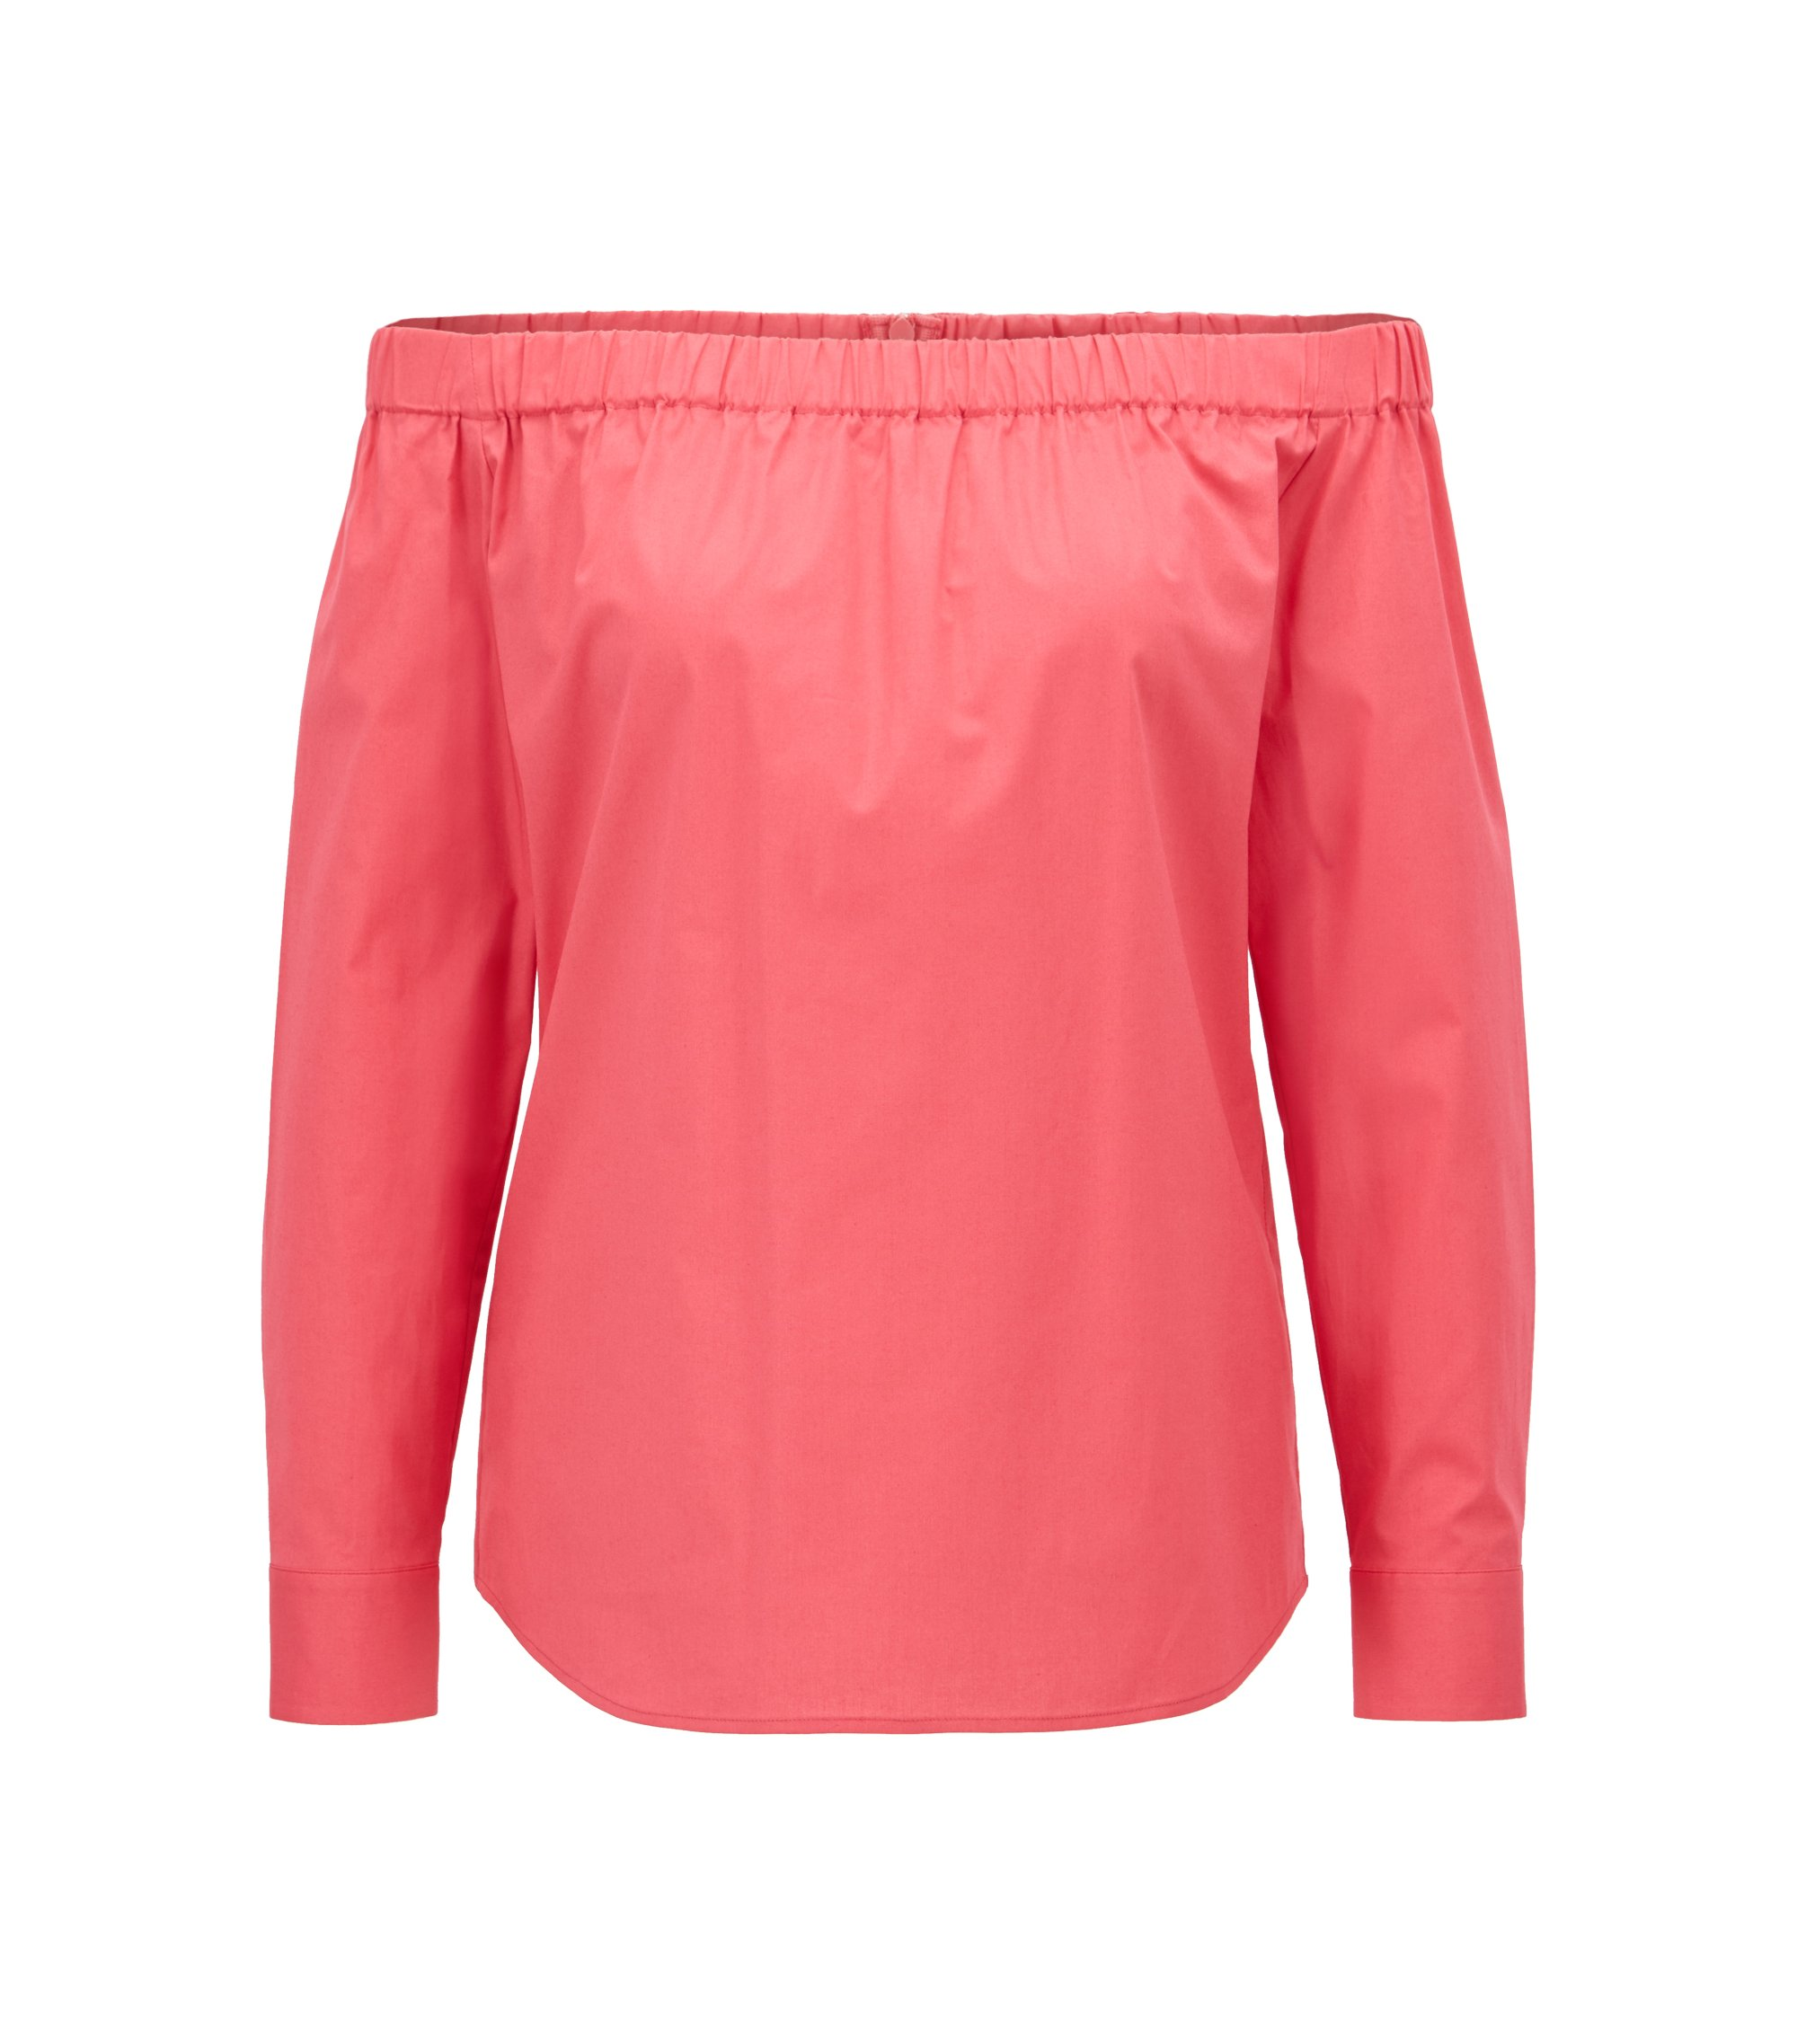 Chemisier Regular Fit à épaules dénudées, en coton stretch, Rose clair